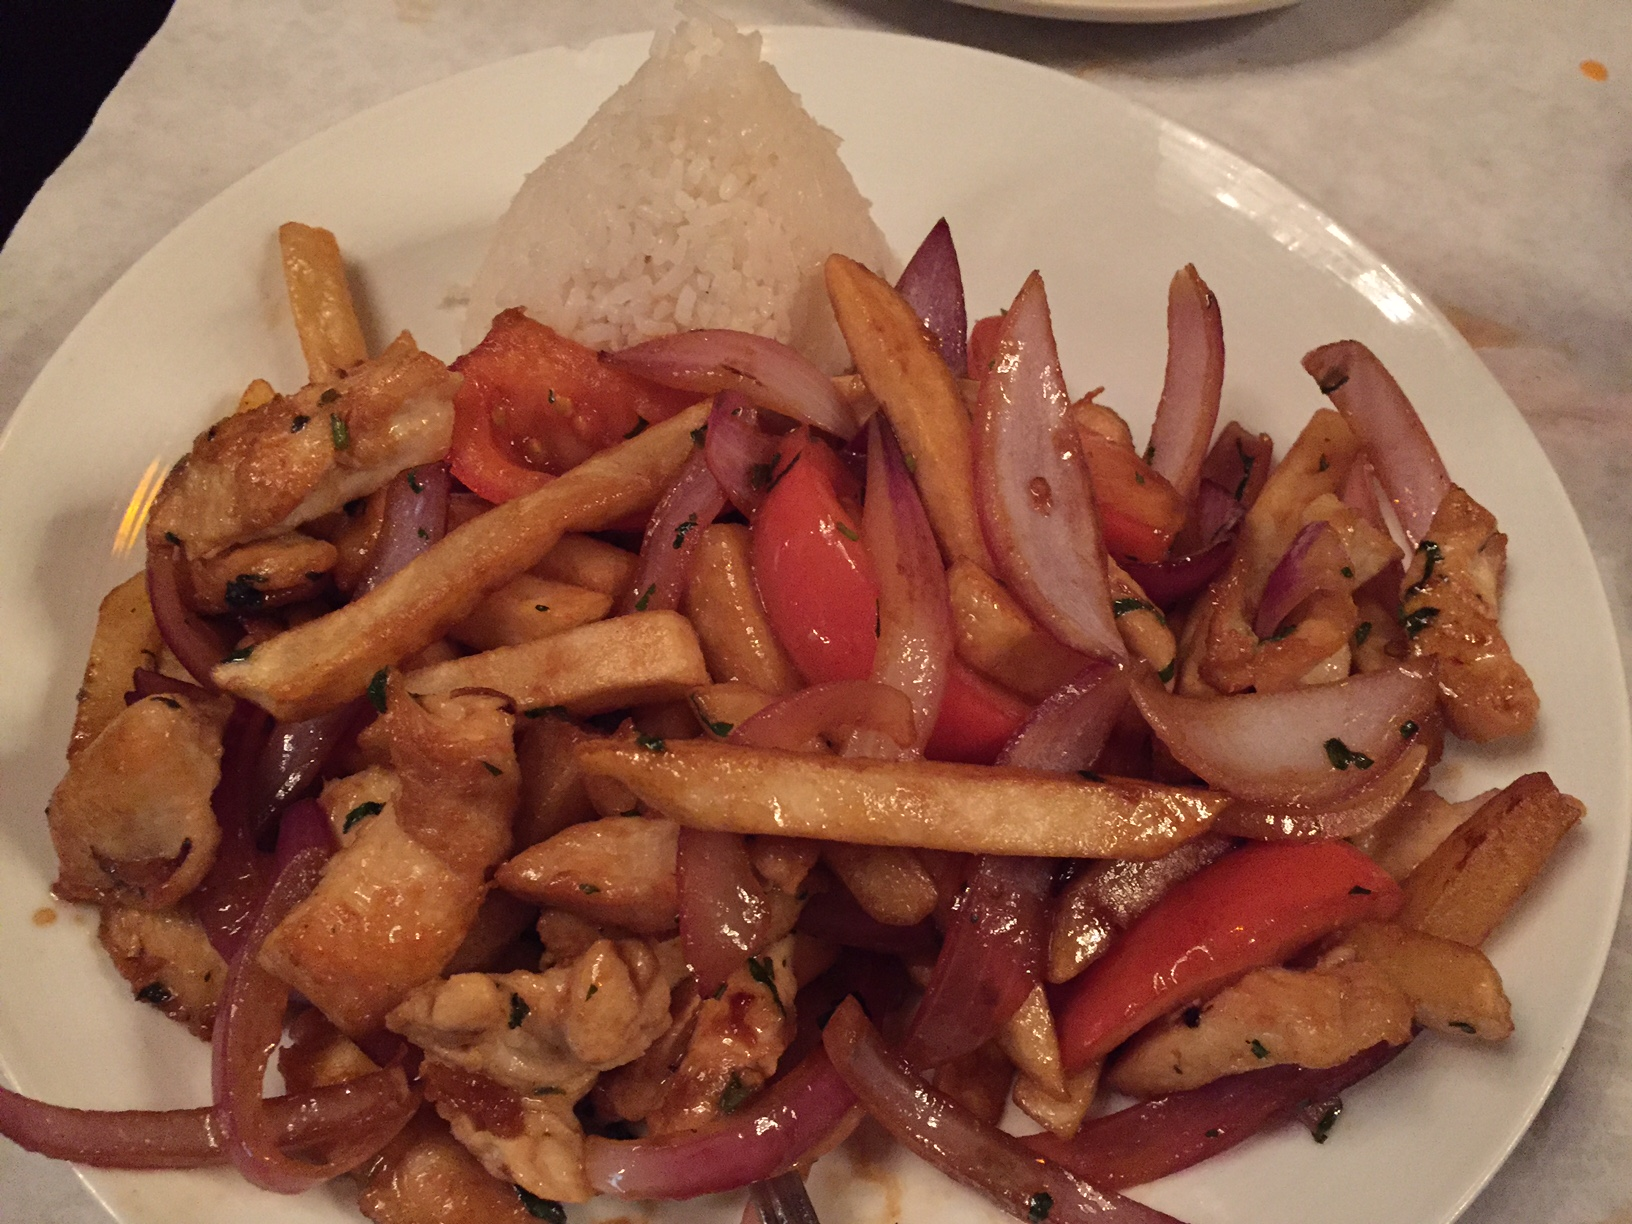 Peruvian Chicken Dish With Fries